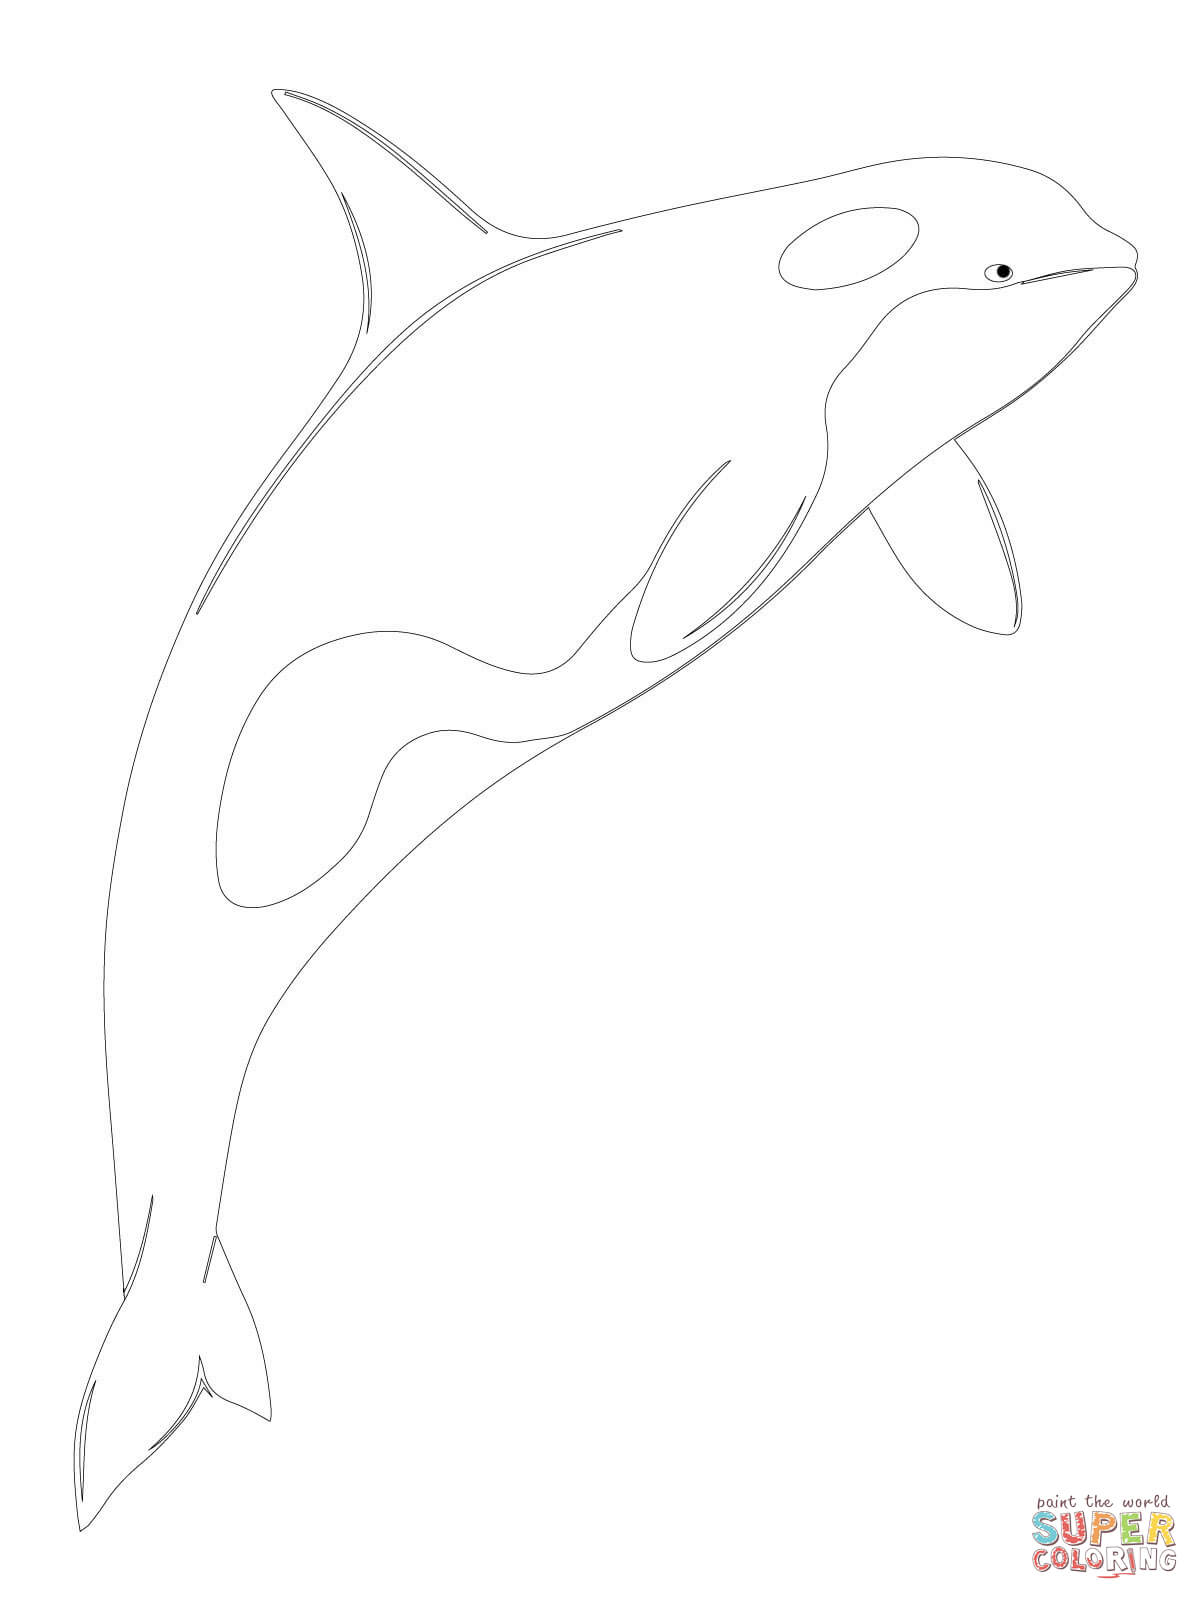 Shamu Coloring Pages Orca Whale Shamu Coloring Page Free Printable Coloring Pages